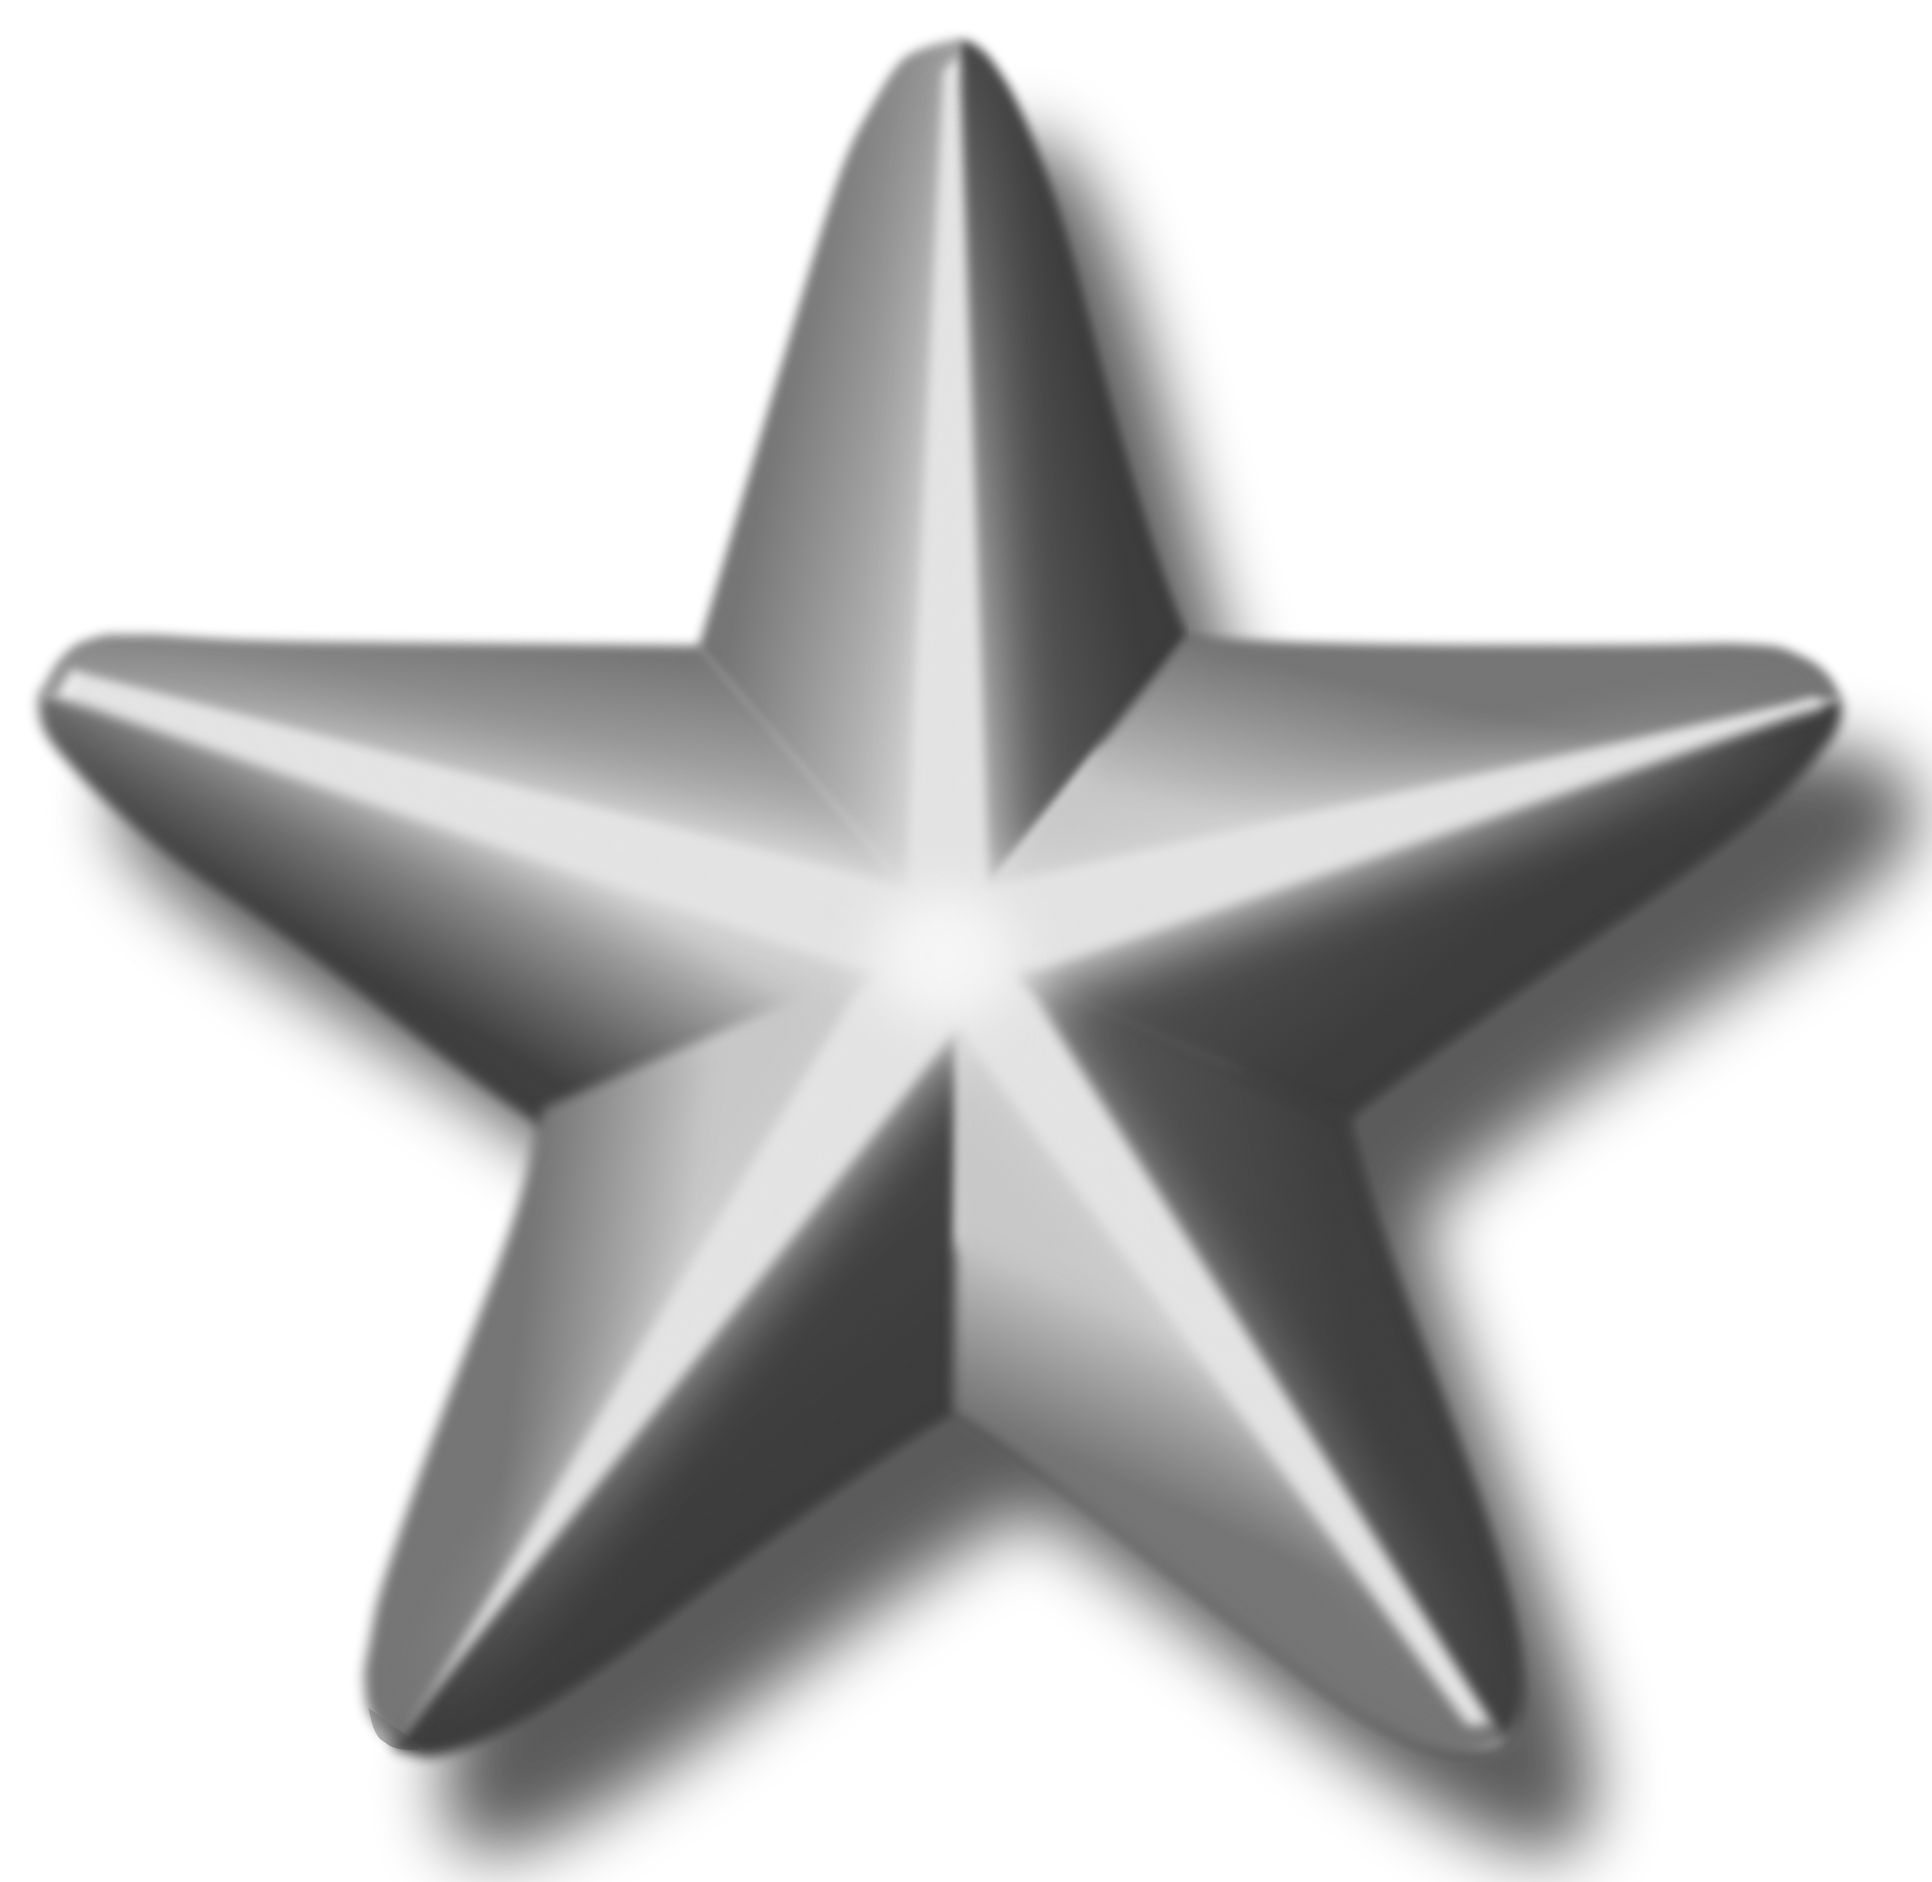 Silver Png - Silver, Transparent background PNG HD thumbnail